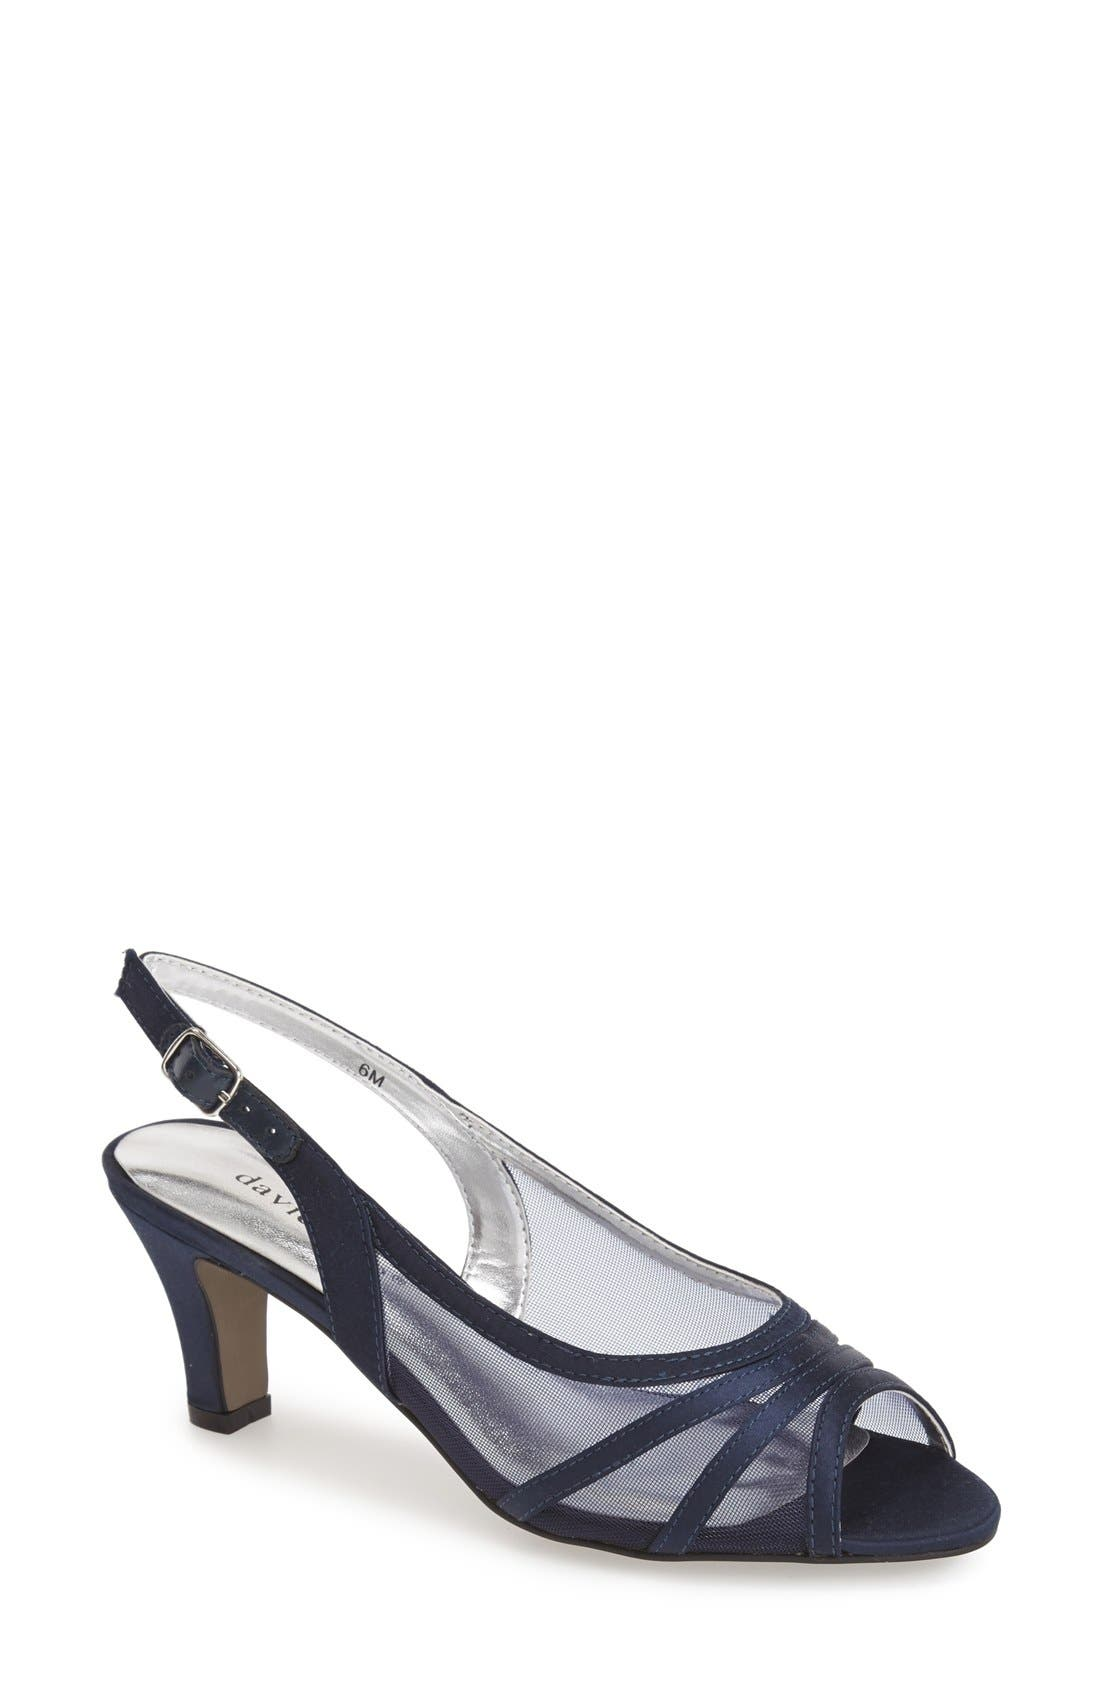 'Petal' Open Toe Slingback Pump,                             Main thumbnail 1, color,                             Navy Fabric